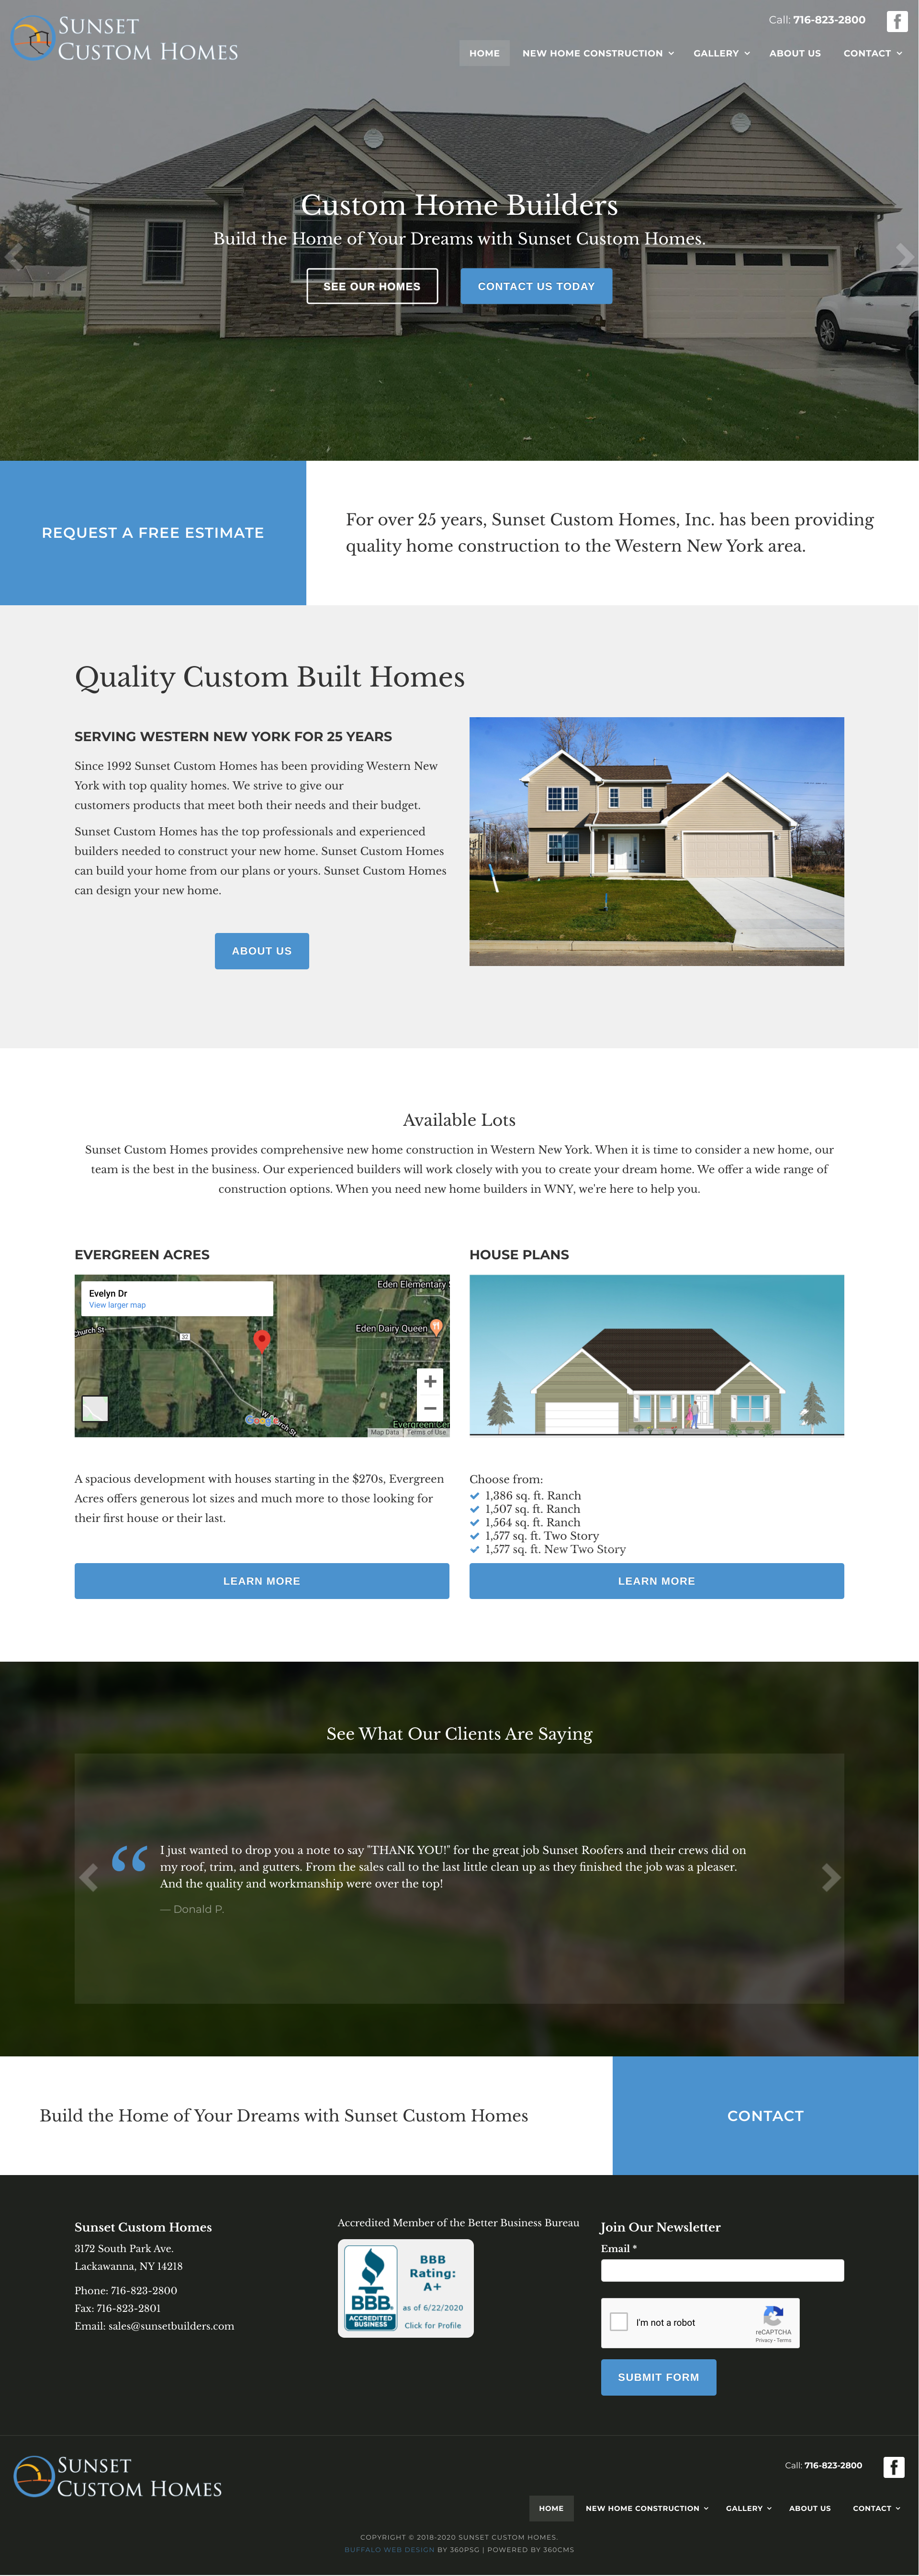 Sunset Custom Homes Website - Desktop